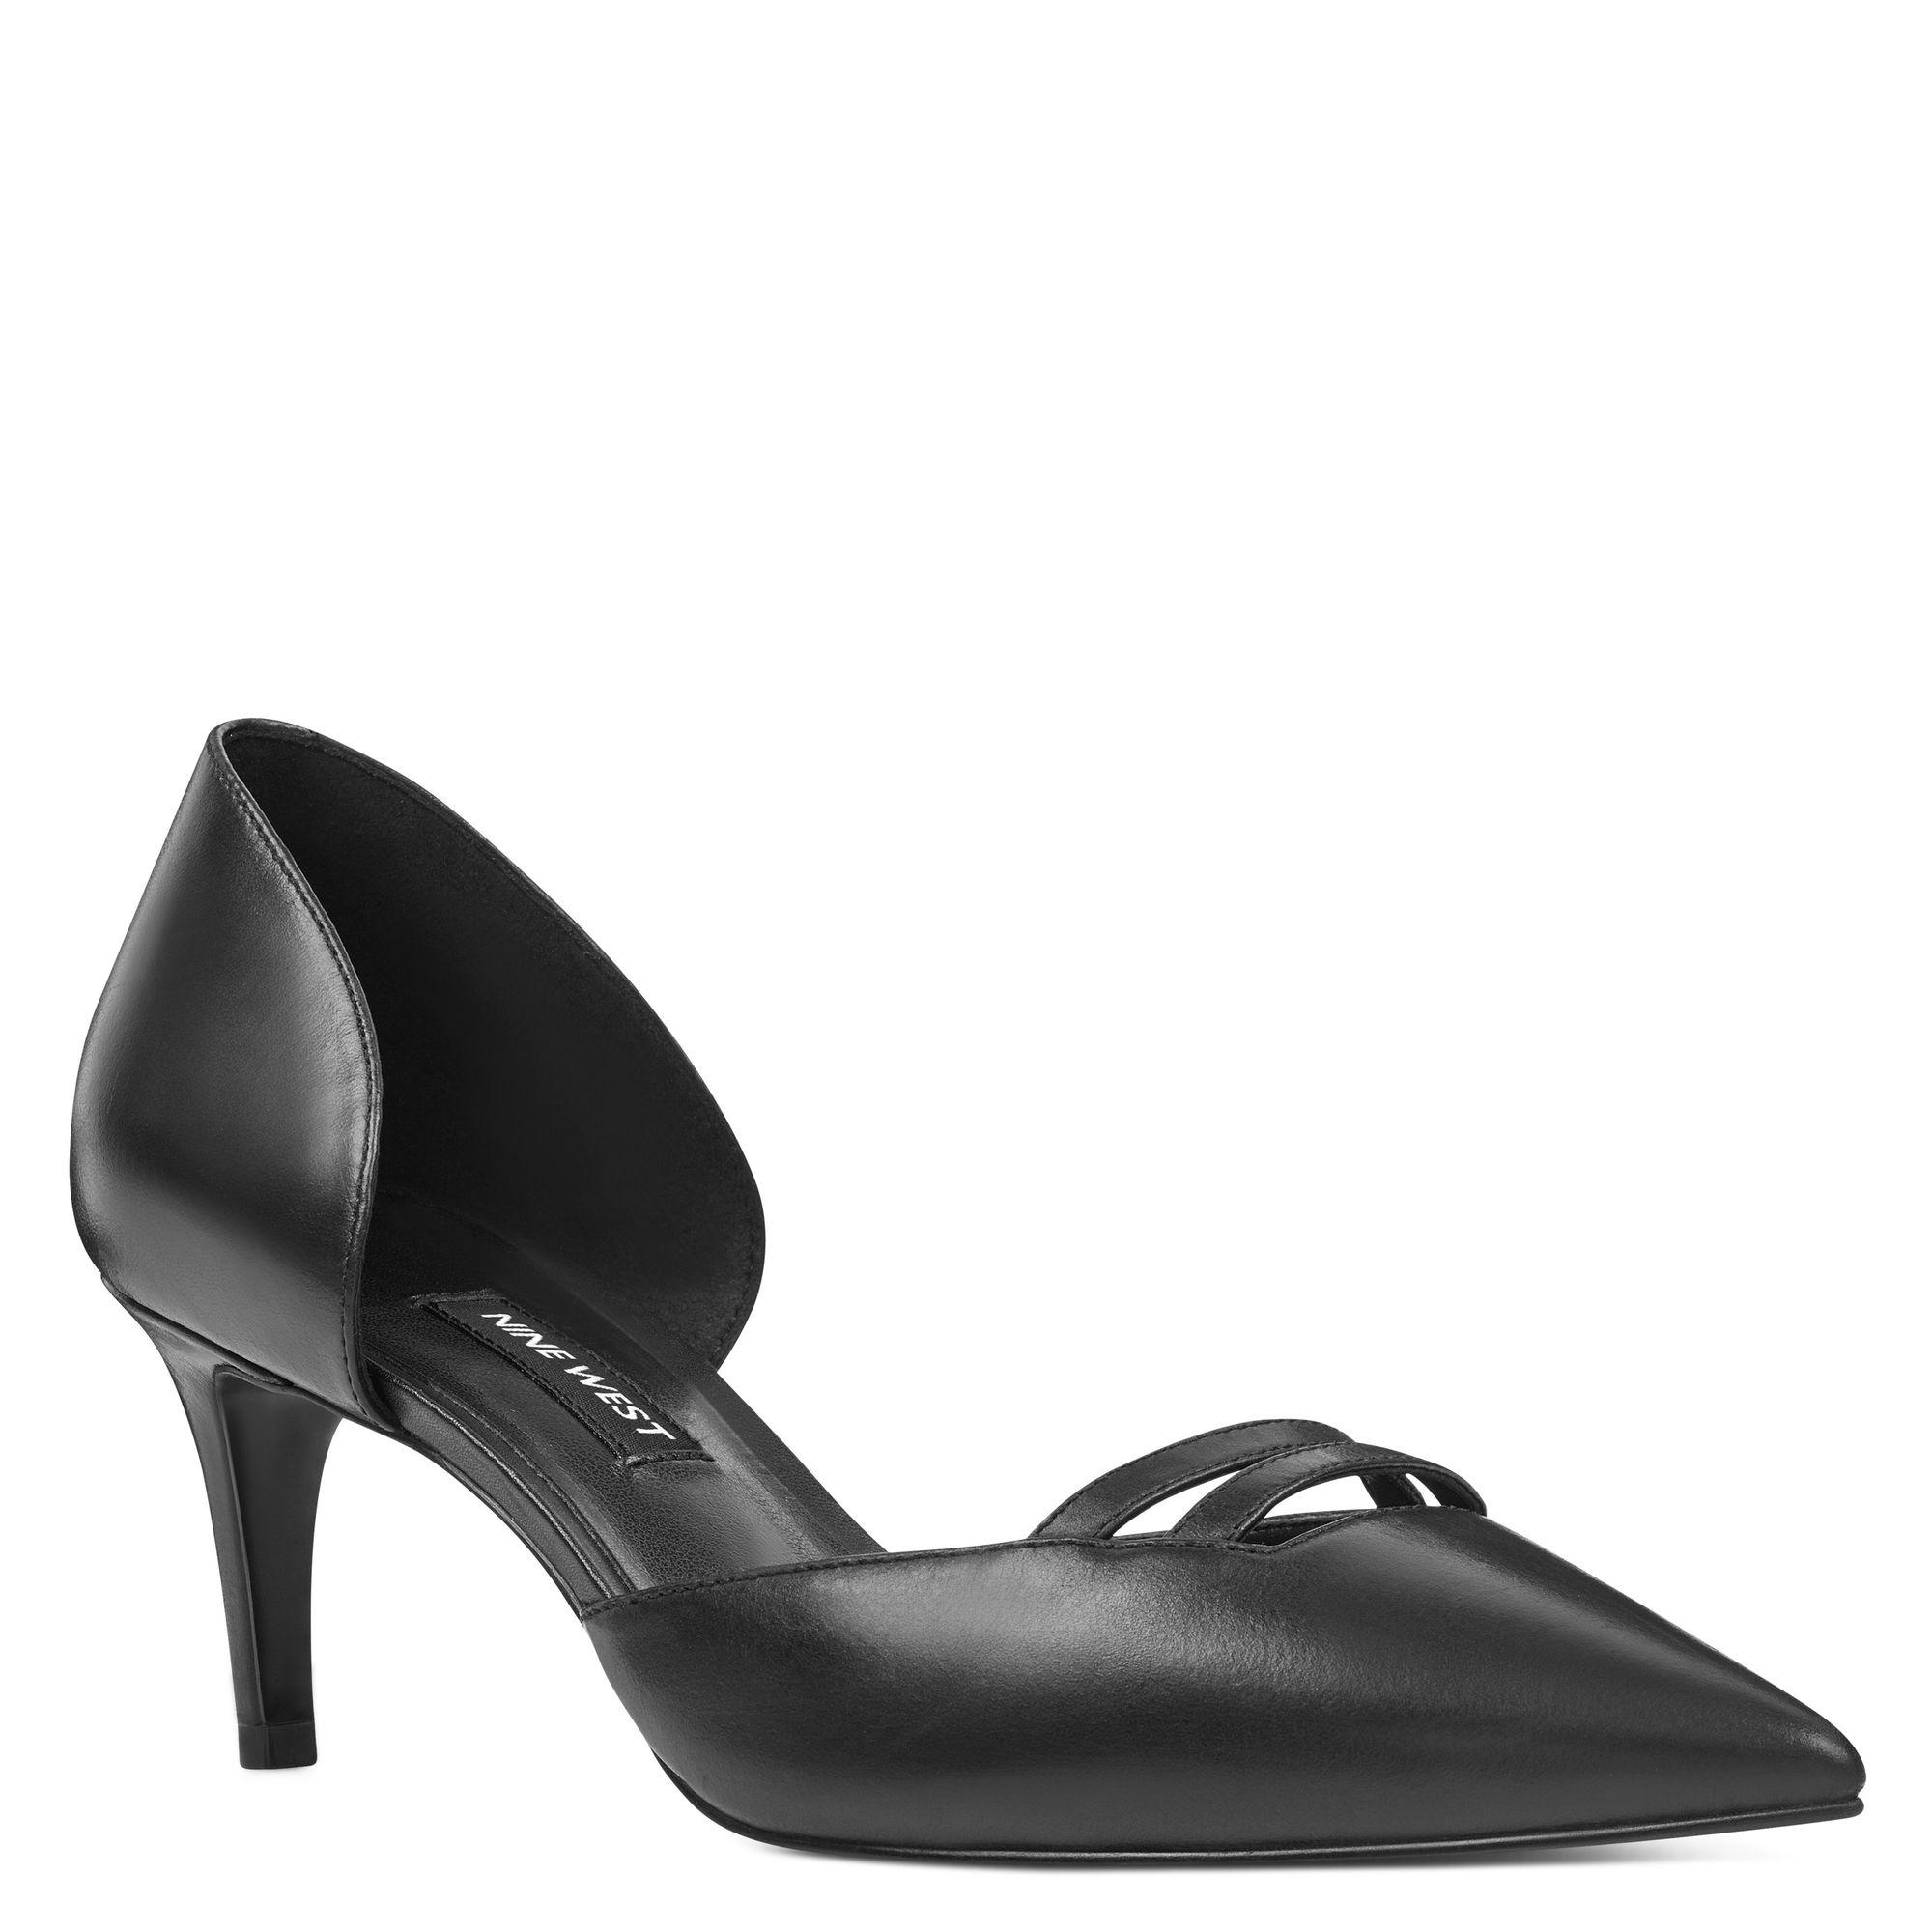 05a05485cfd Lyst - Nine West Suitup D orsay Pumps in Black